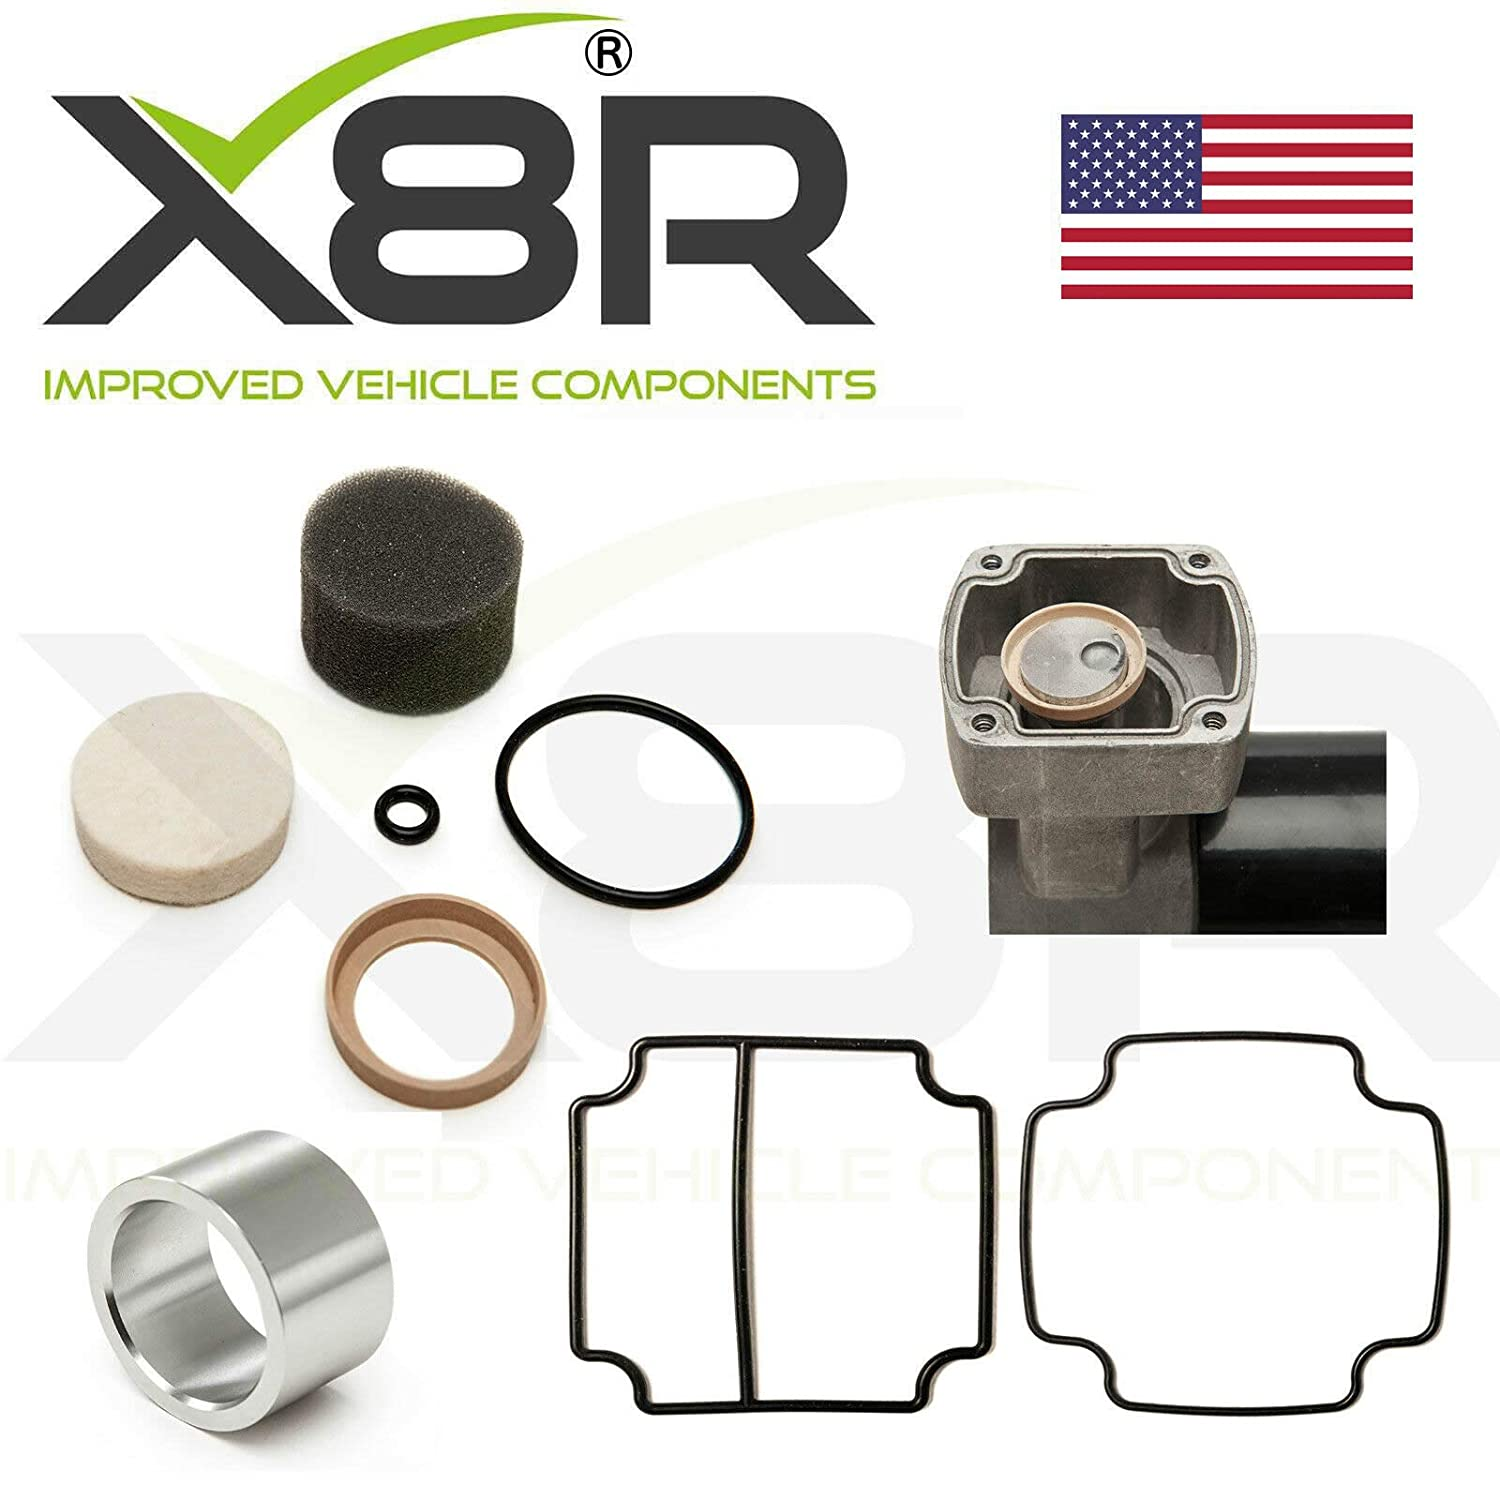 X8R REPAIR AIR SUSPENSION COMPRESSOR PISTON LINER AND SEAL APPLICABLE TO LAND ROVER RANGE ROVER P38 Part # X8R22